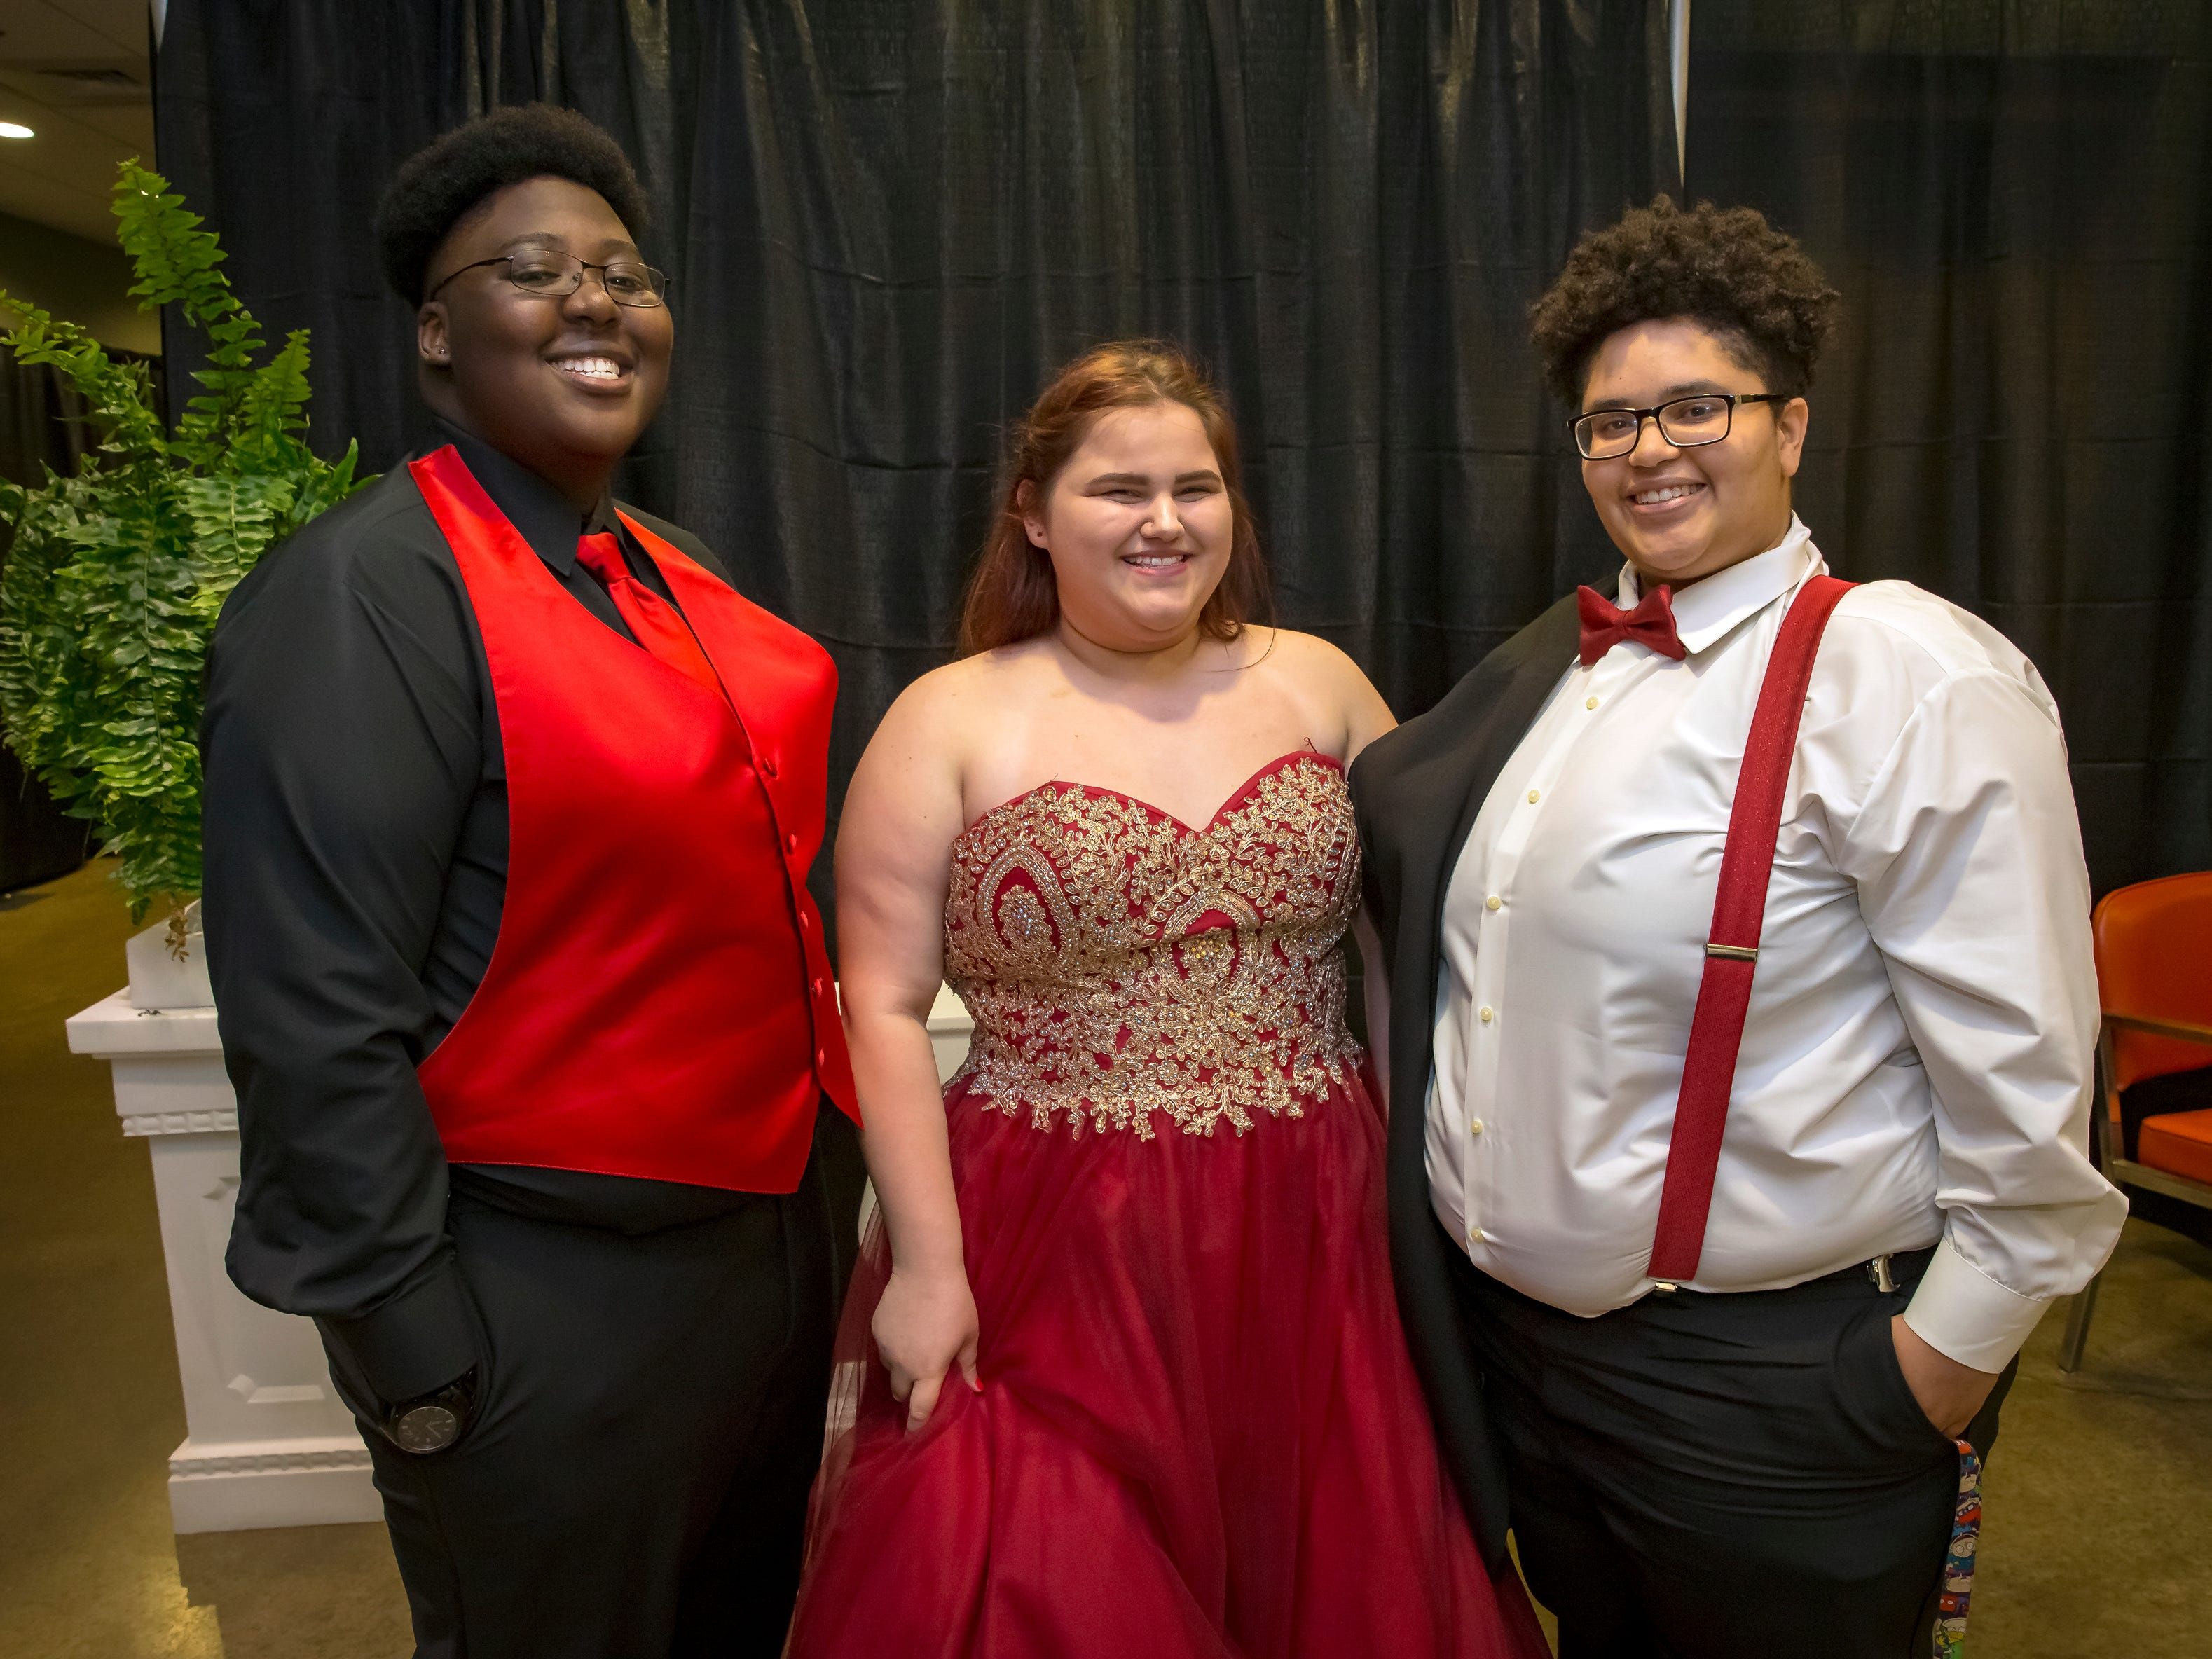 Akaila Hugley, Madison Lands and Calissa Wilcox arrive at the Oakland High School prom held at Lane Agri-Park Saturday, April, 27, 2019 in Murfreesboro .